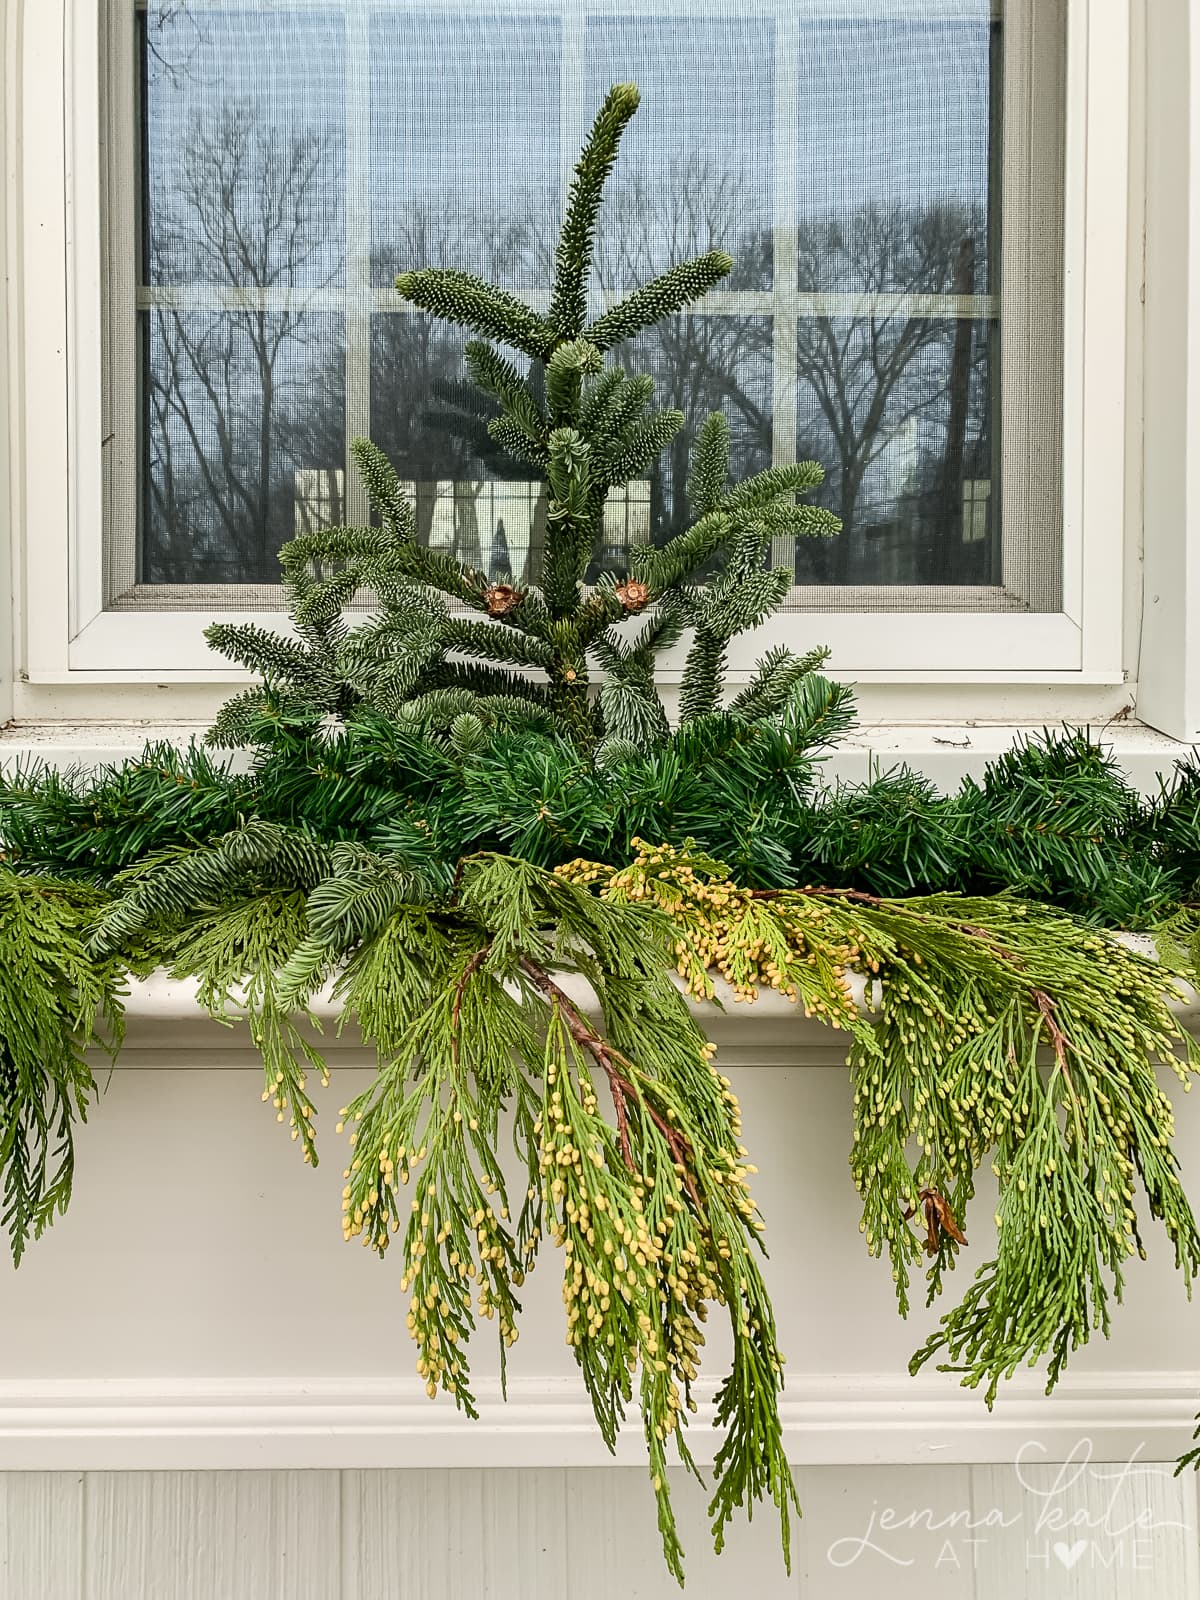 A large piece of fir at the back of the window box with cedar draping over the front